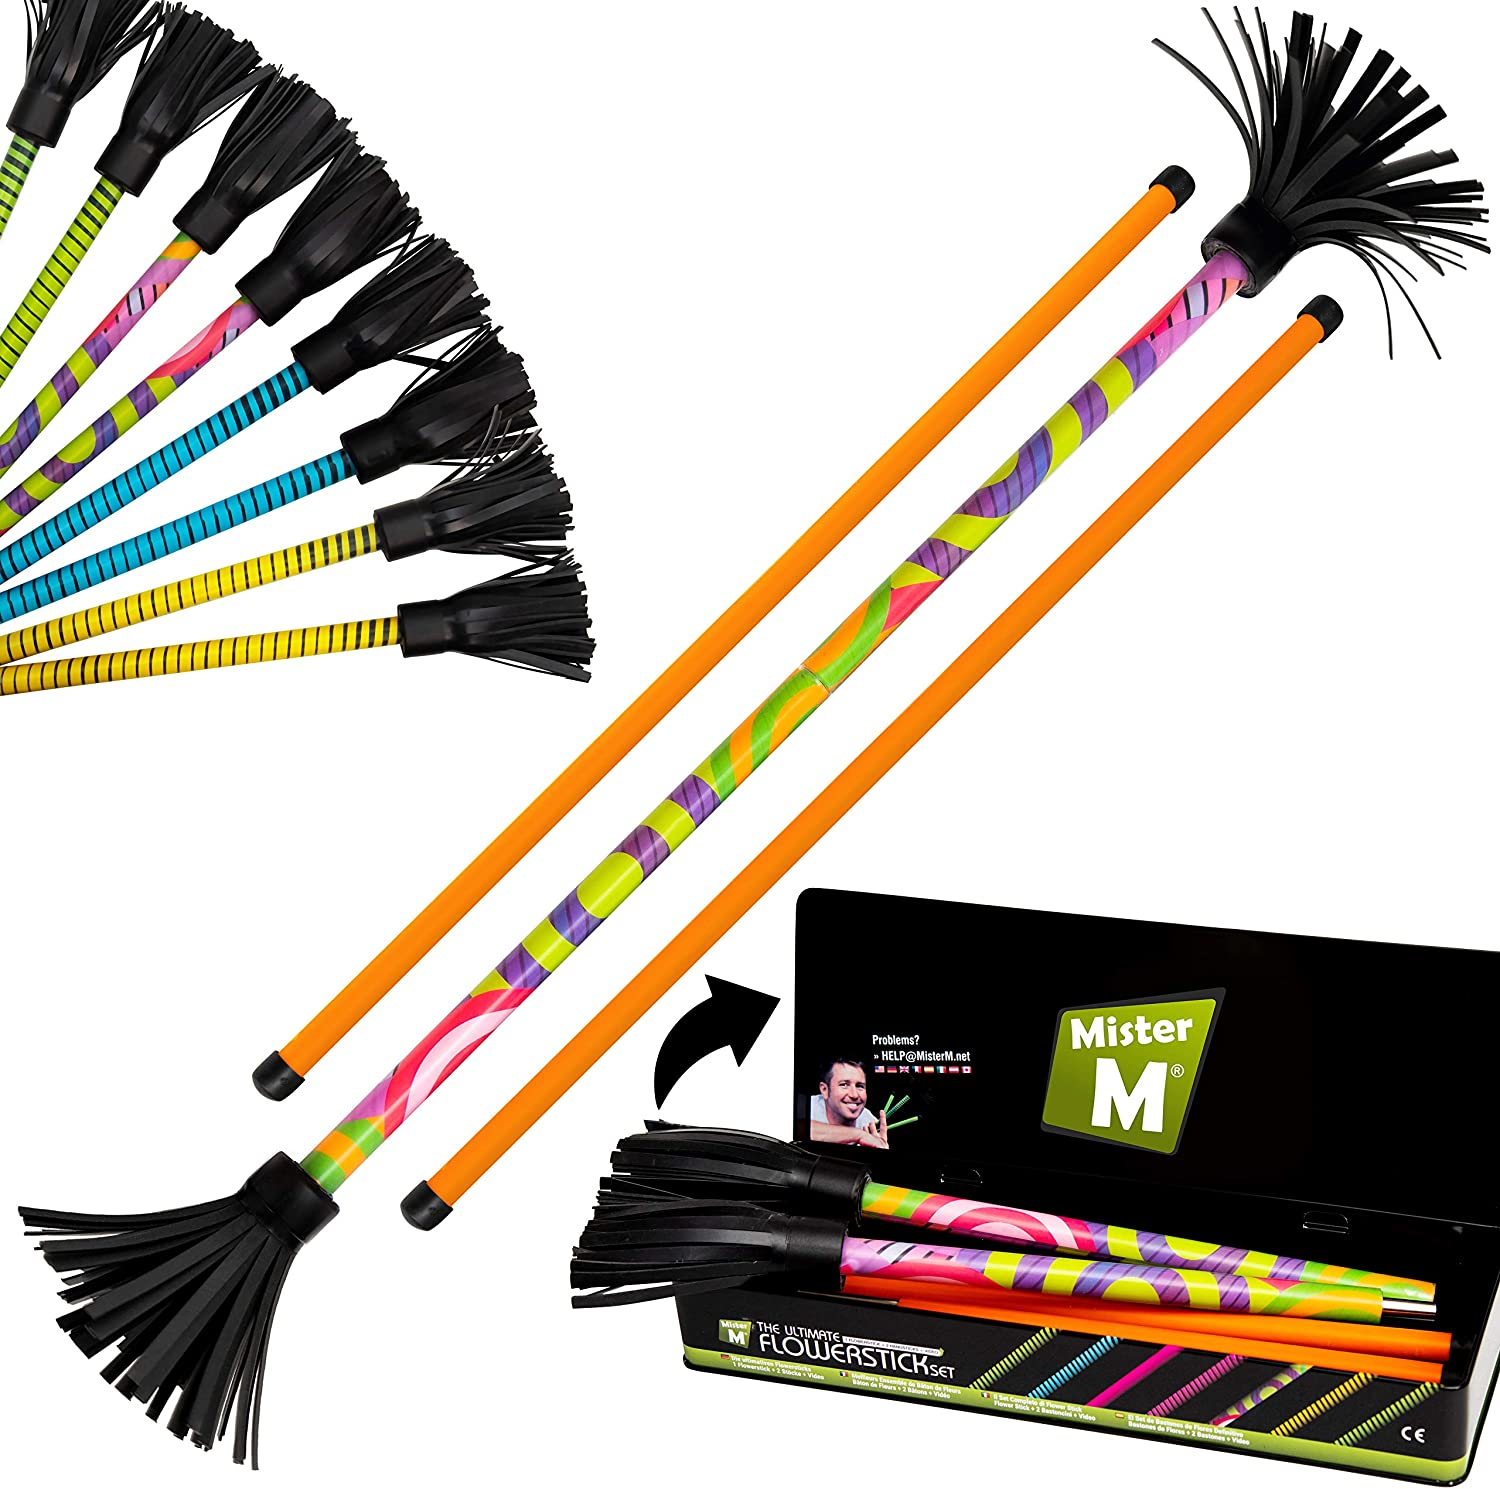 Giallo Include i Manici con Silicone Ultra-Grip da 2 mm Flower Sticks per Principianti e Professionisti. 5 Fantastici Disegni Il Completo Set Flash Flowerstick